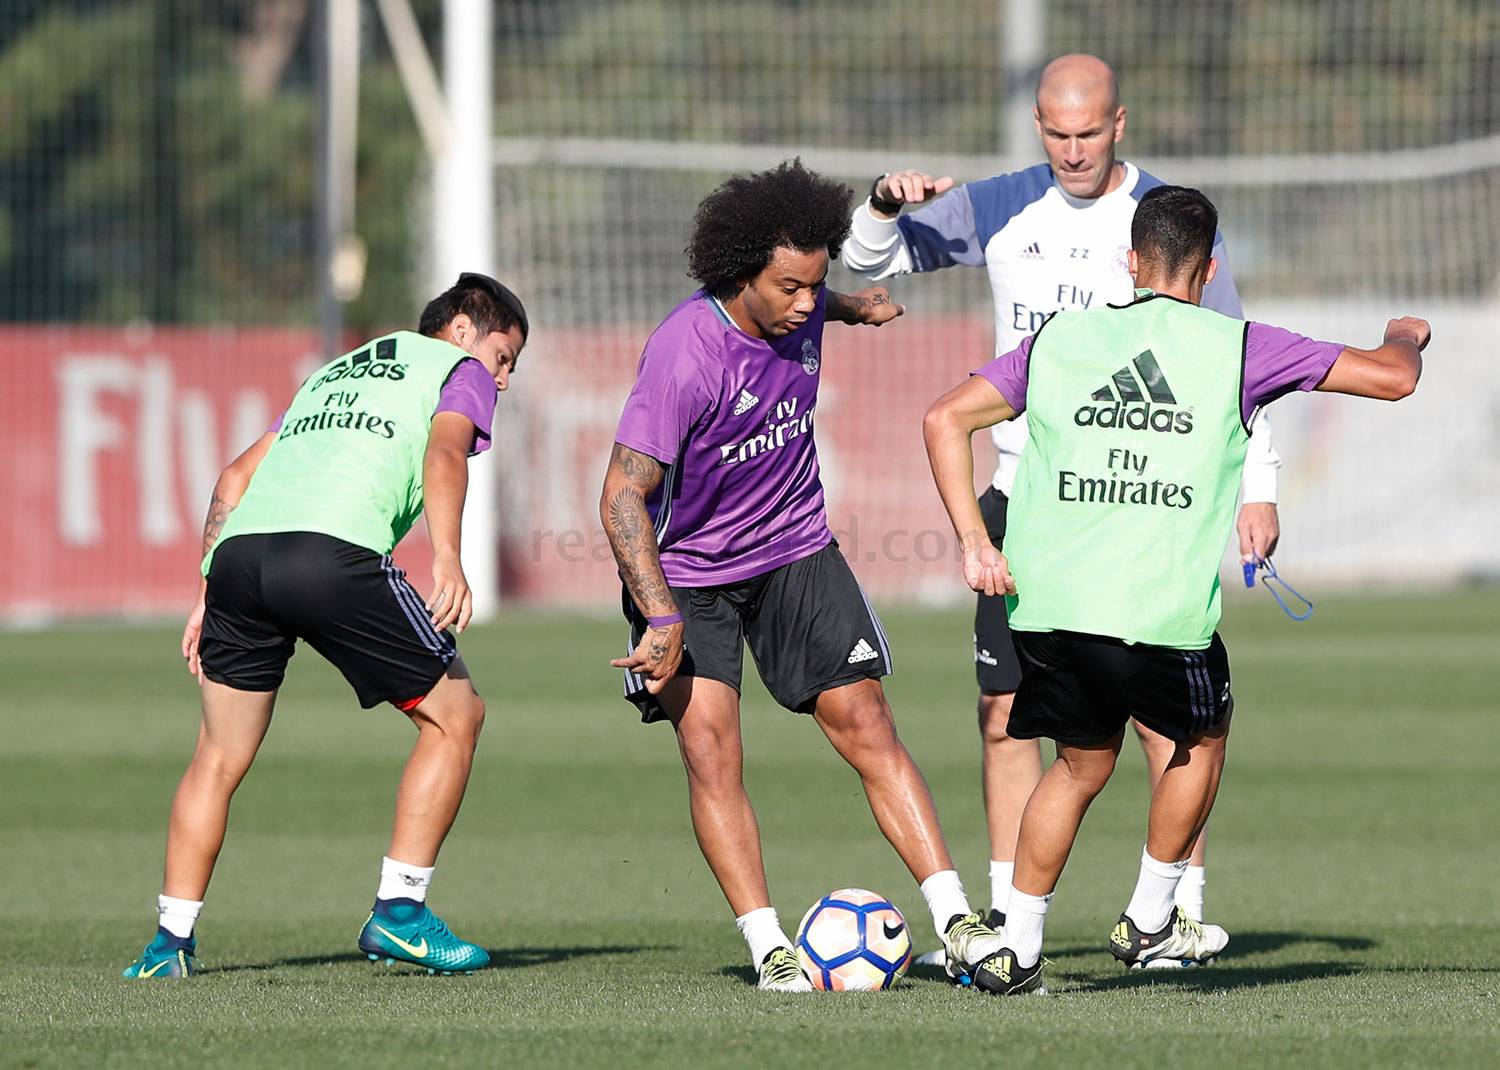 Real Madrid - Entrenamiento del Real Madrid - 10-10-2016